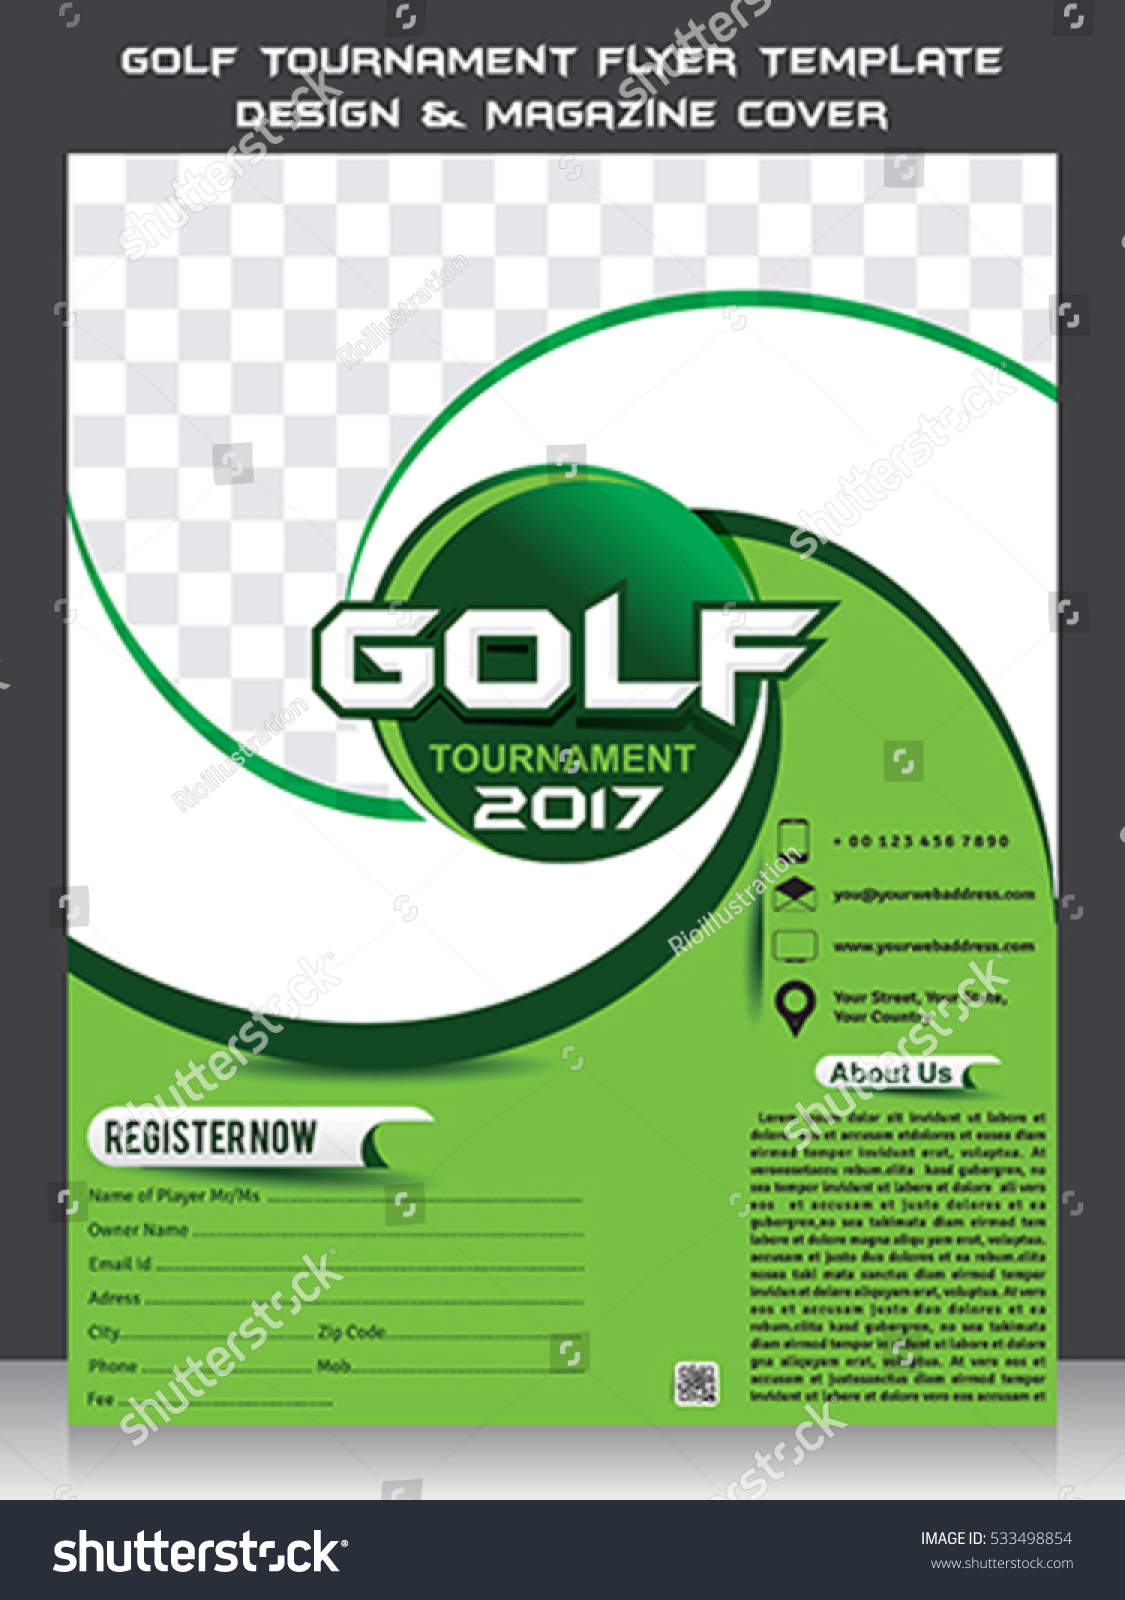 Golf Tournament Flyer Template Design Magazine Stock Vektorgrafik